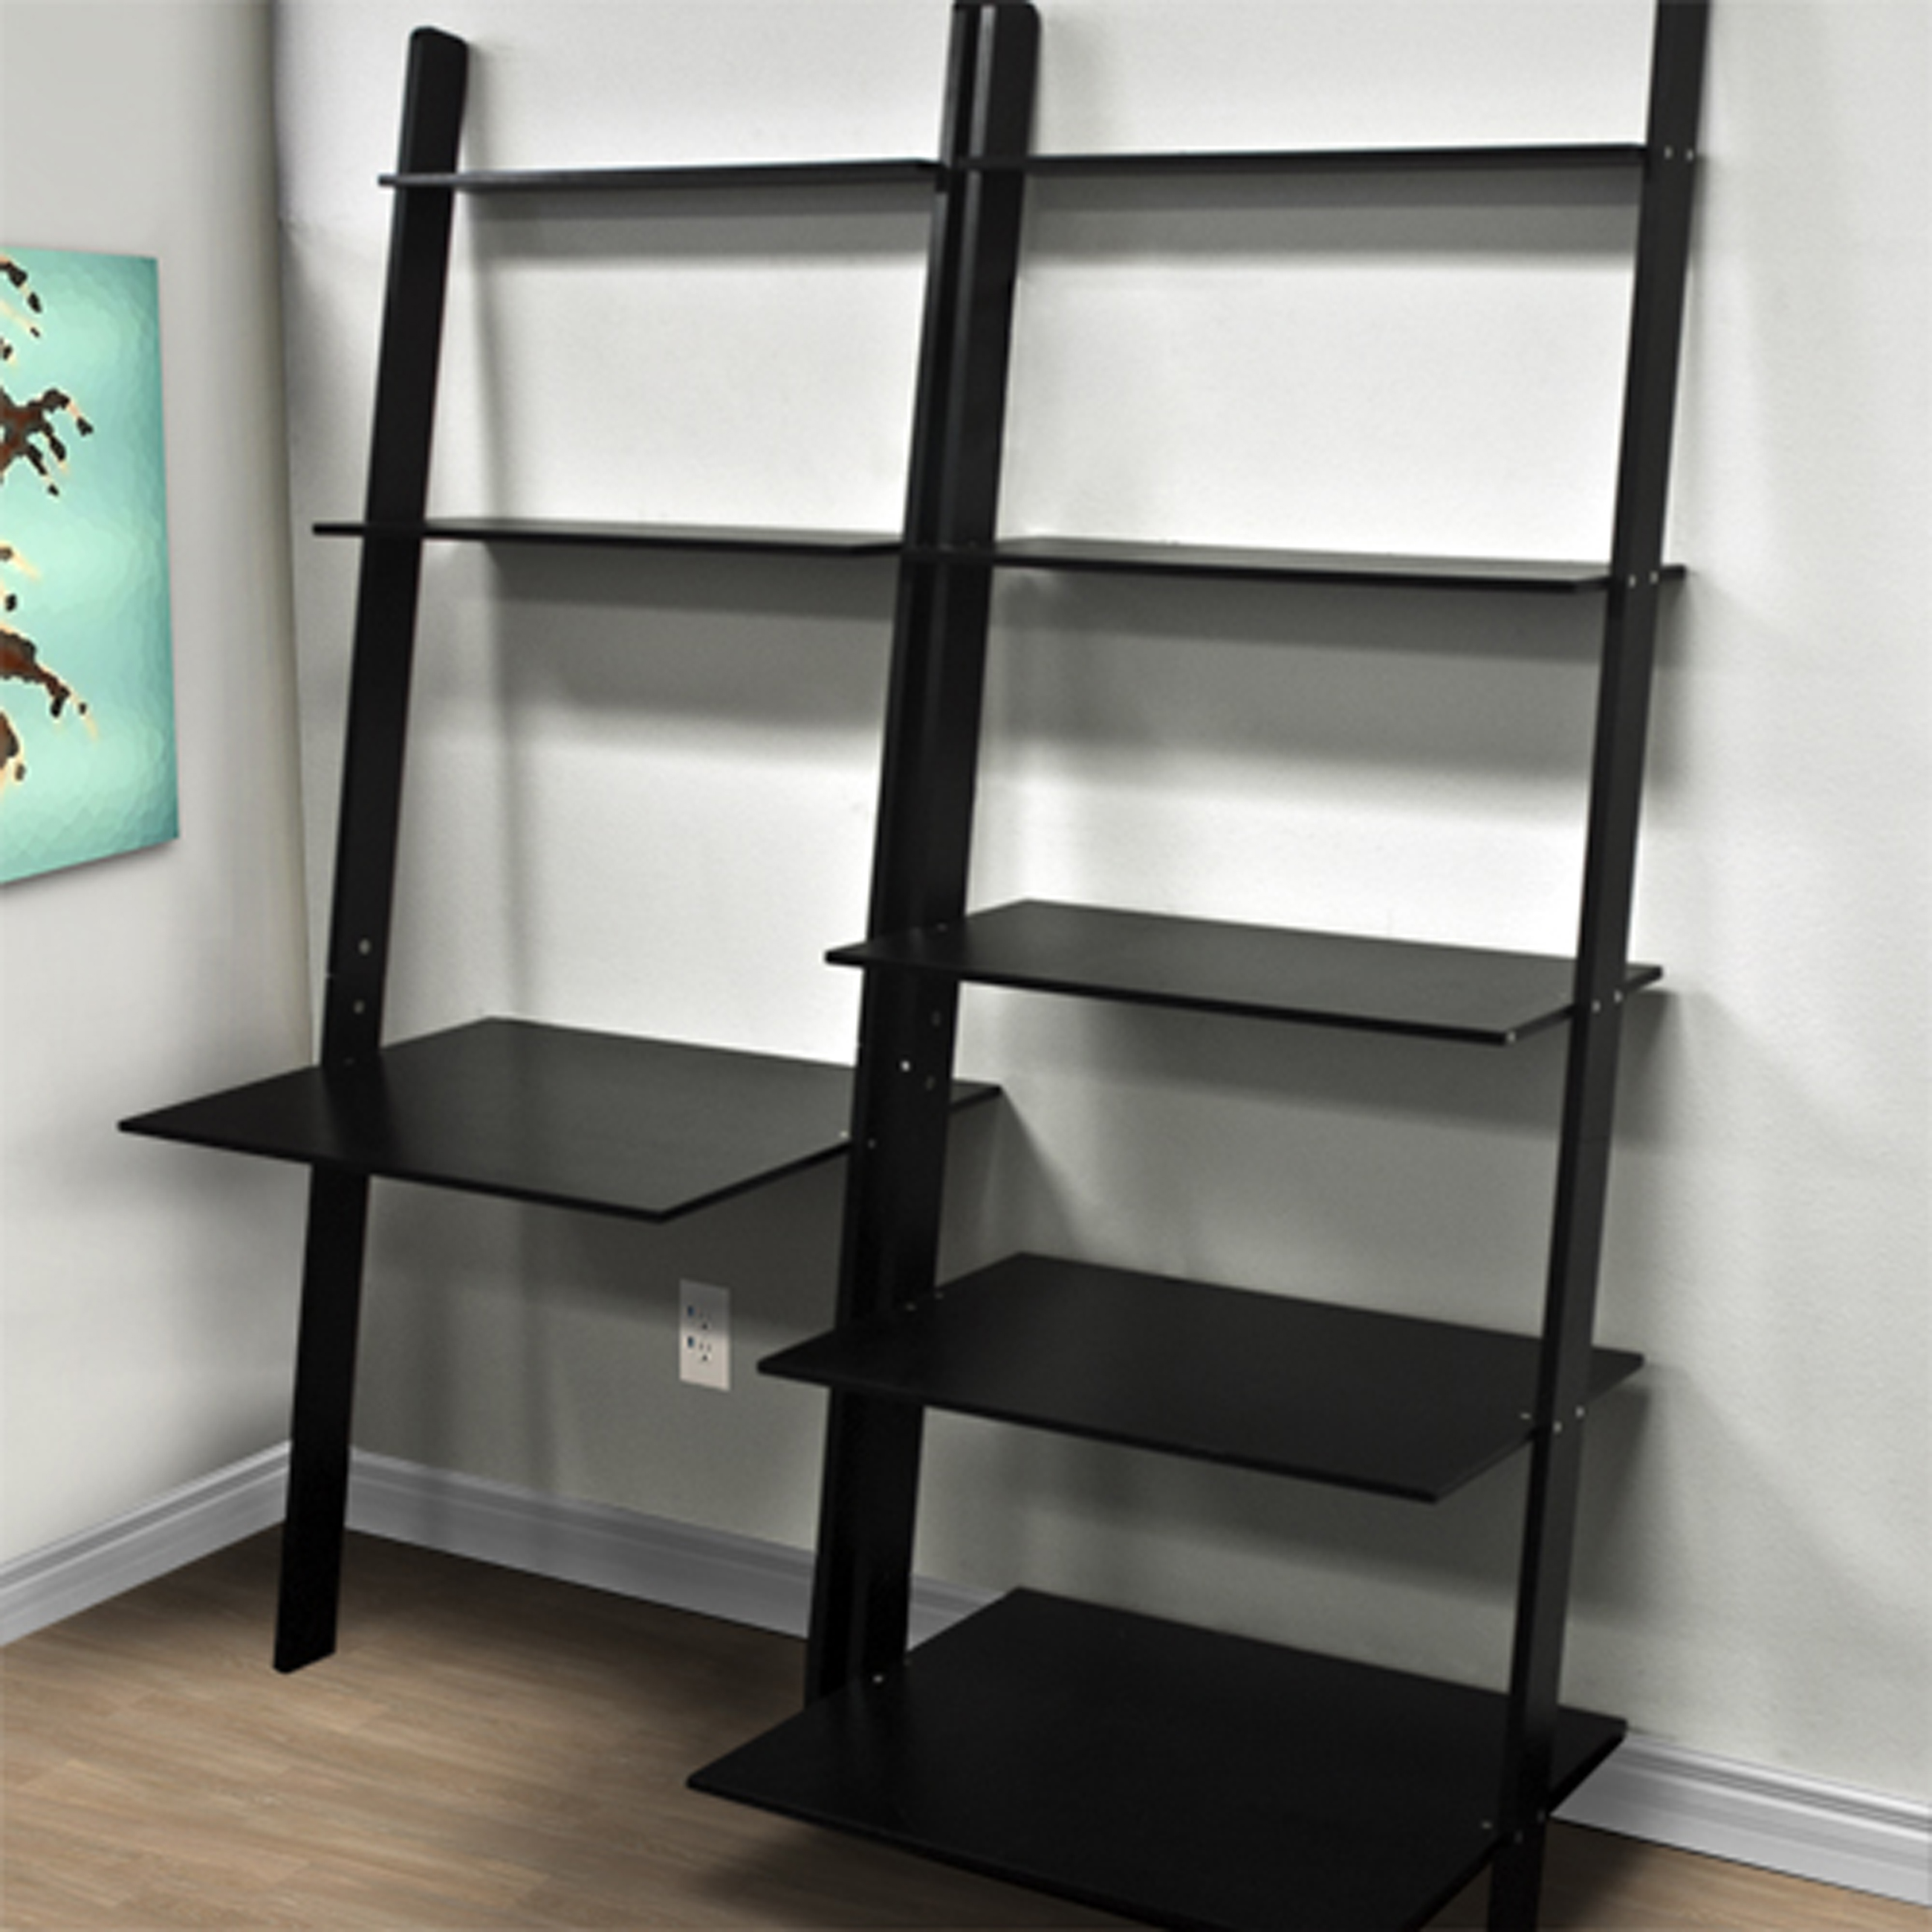 Best Choice Products 7 Shelf Leaning Bookcase And Computer Desk For Home And Ofice Furniture Black Walmart Com Walmart Com